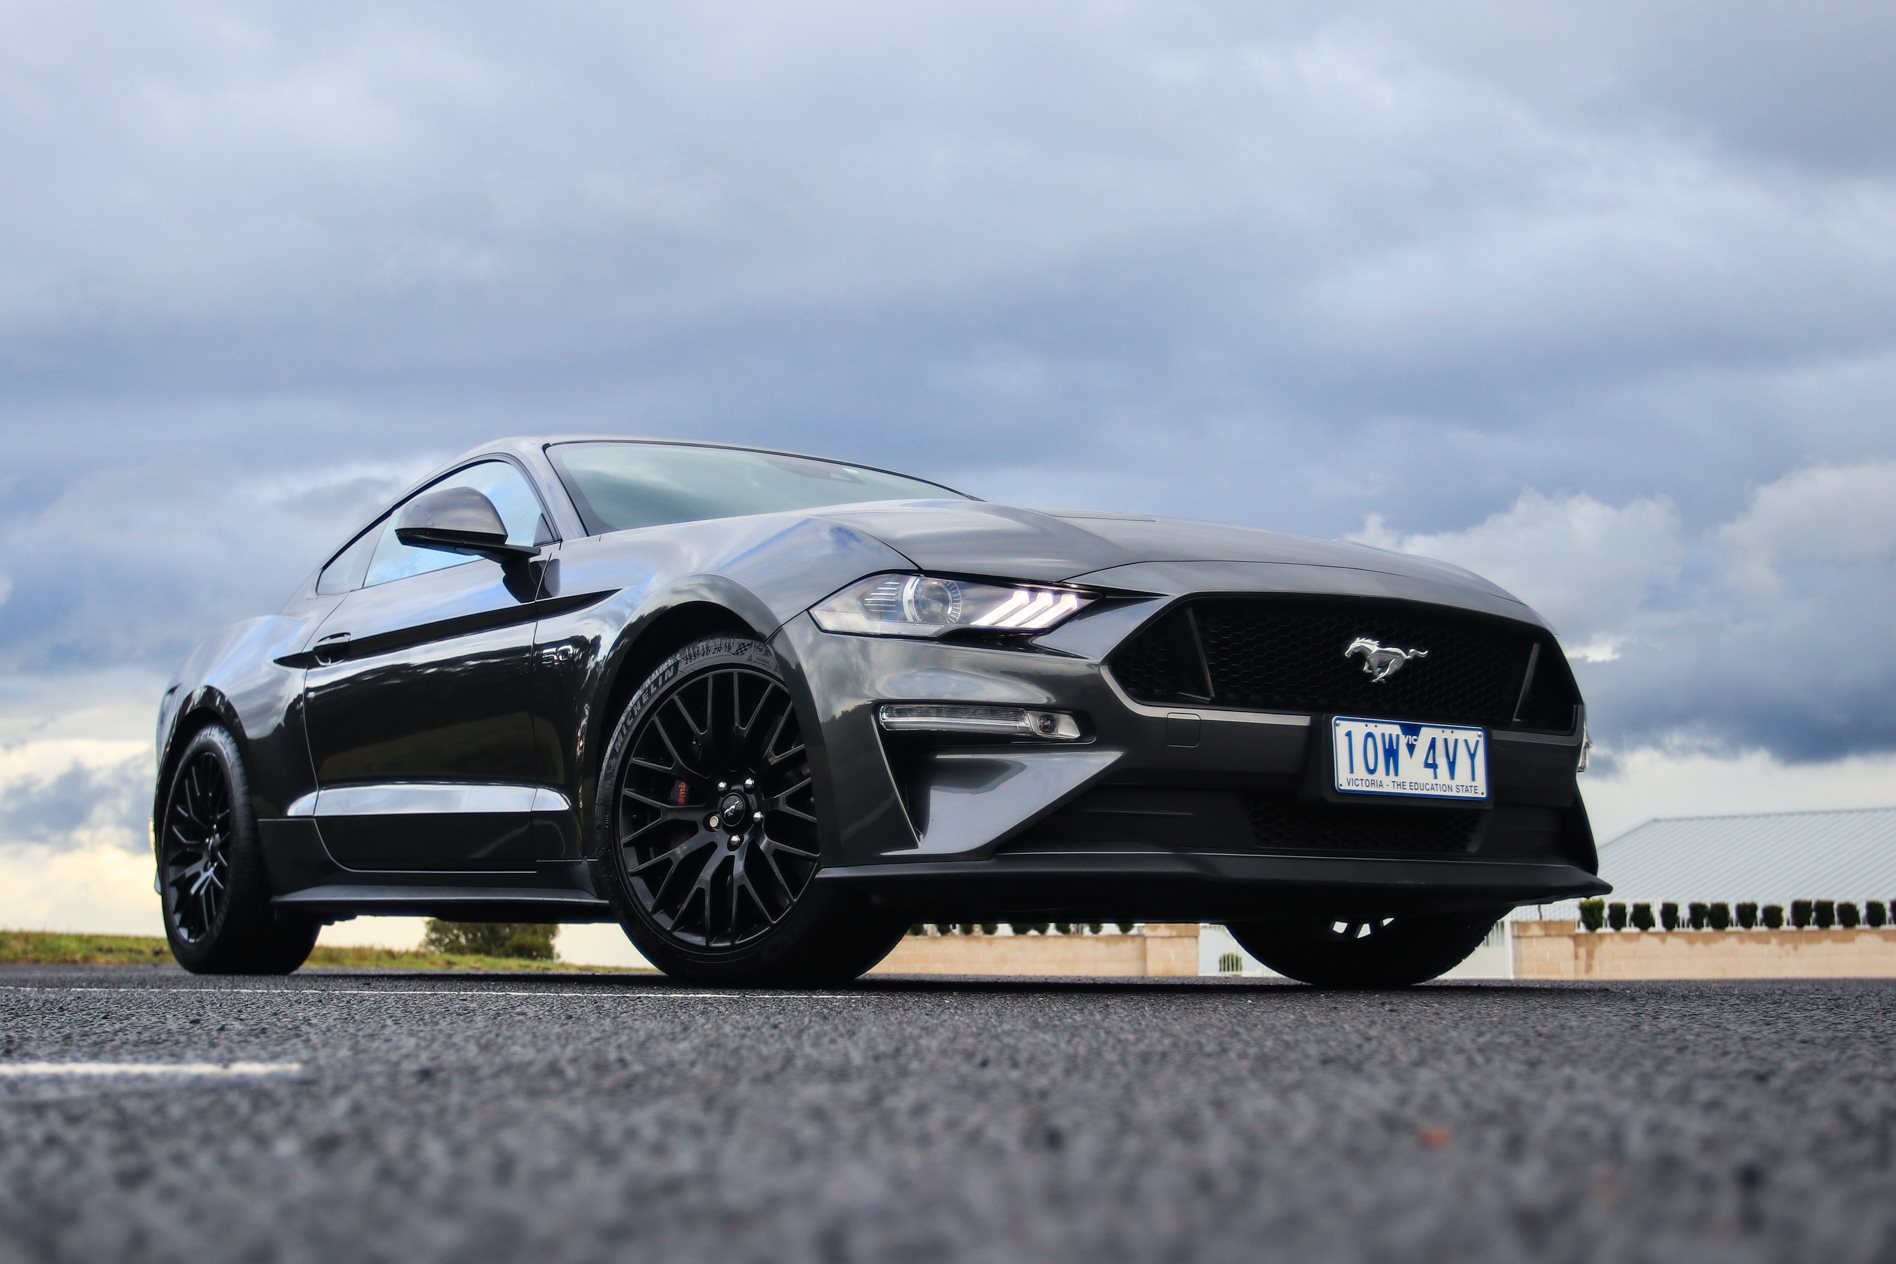 Ford invests in Australia as Holden exits